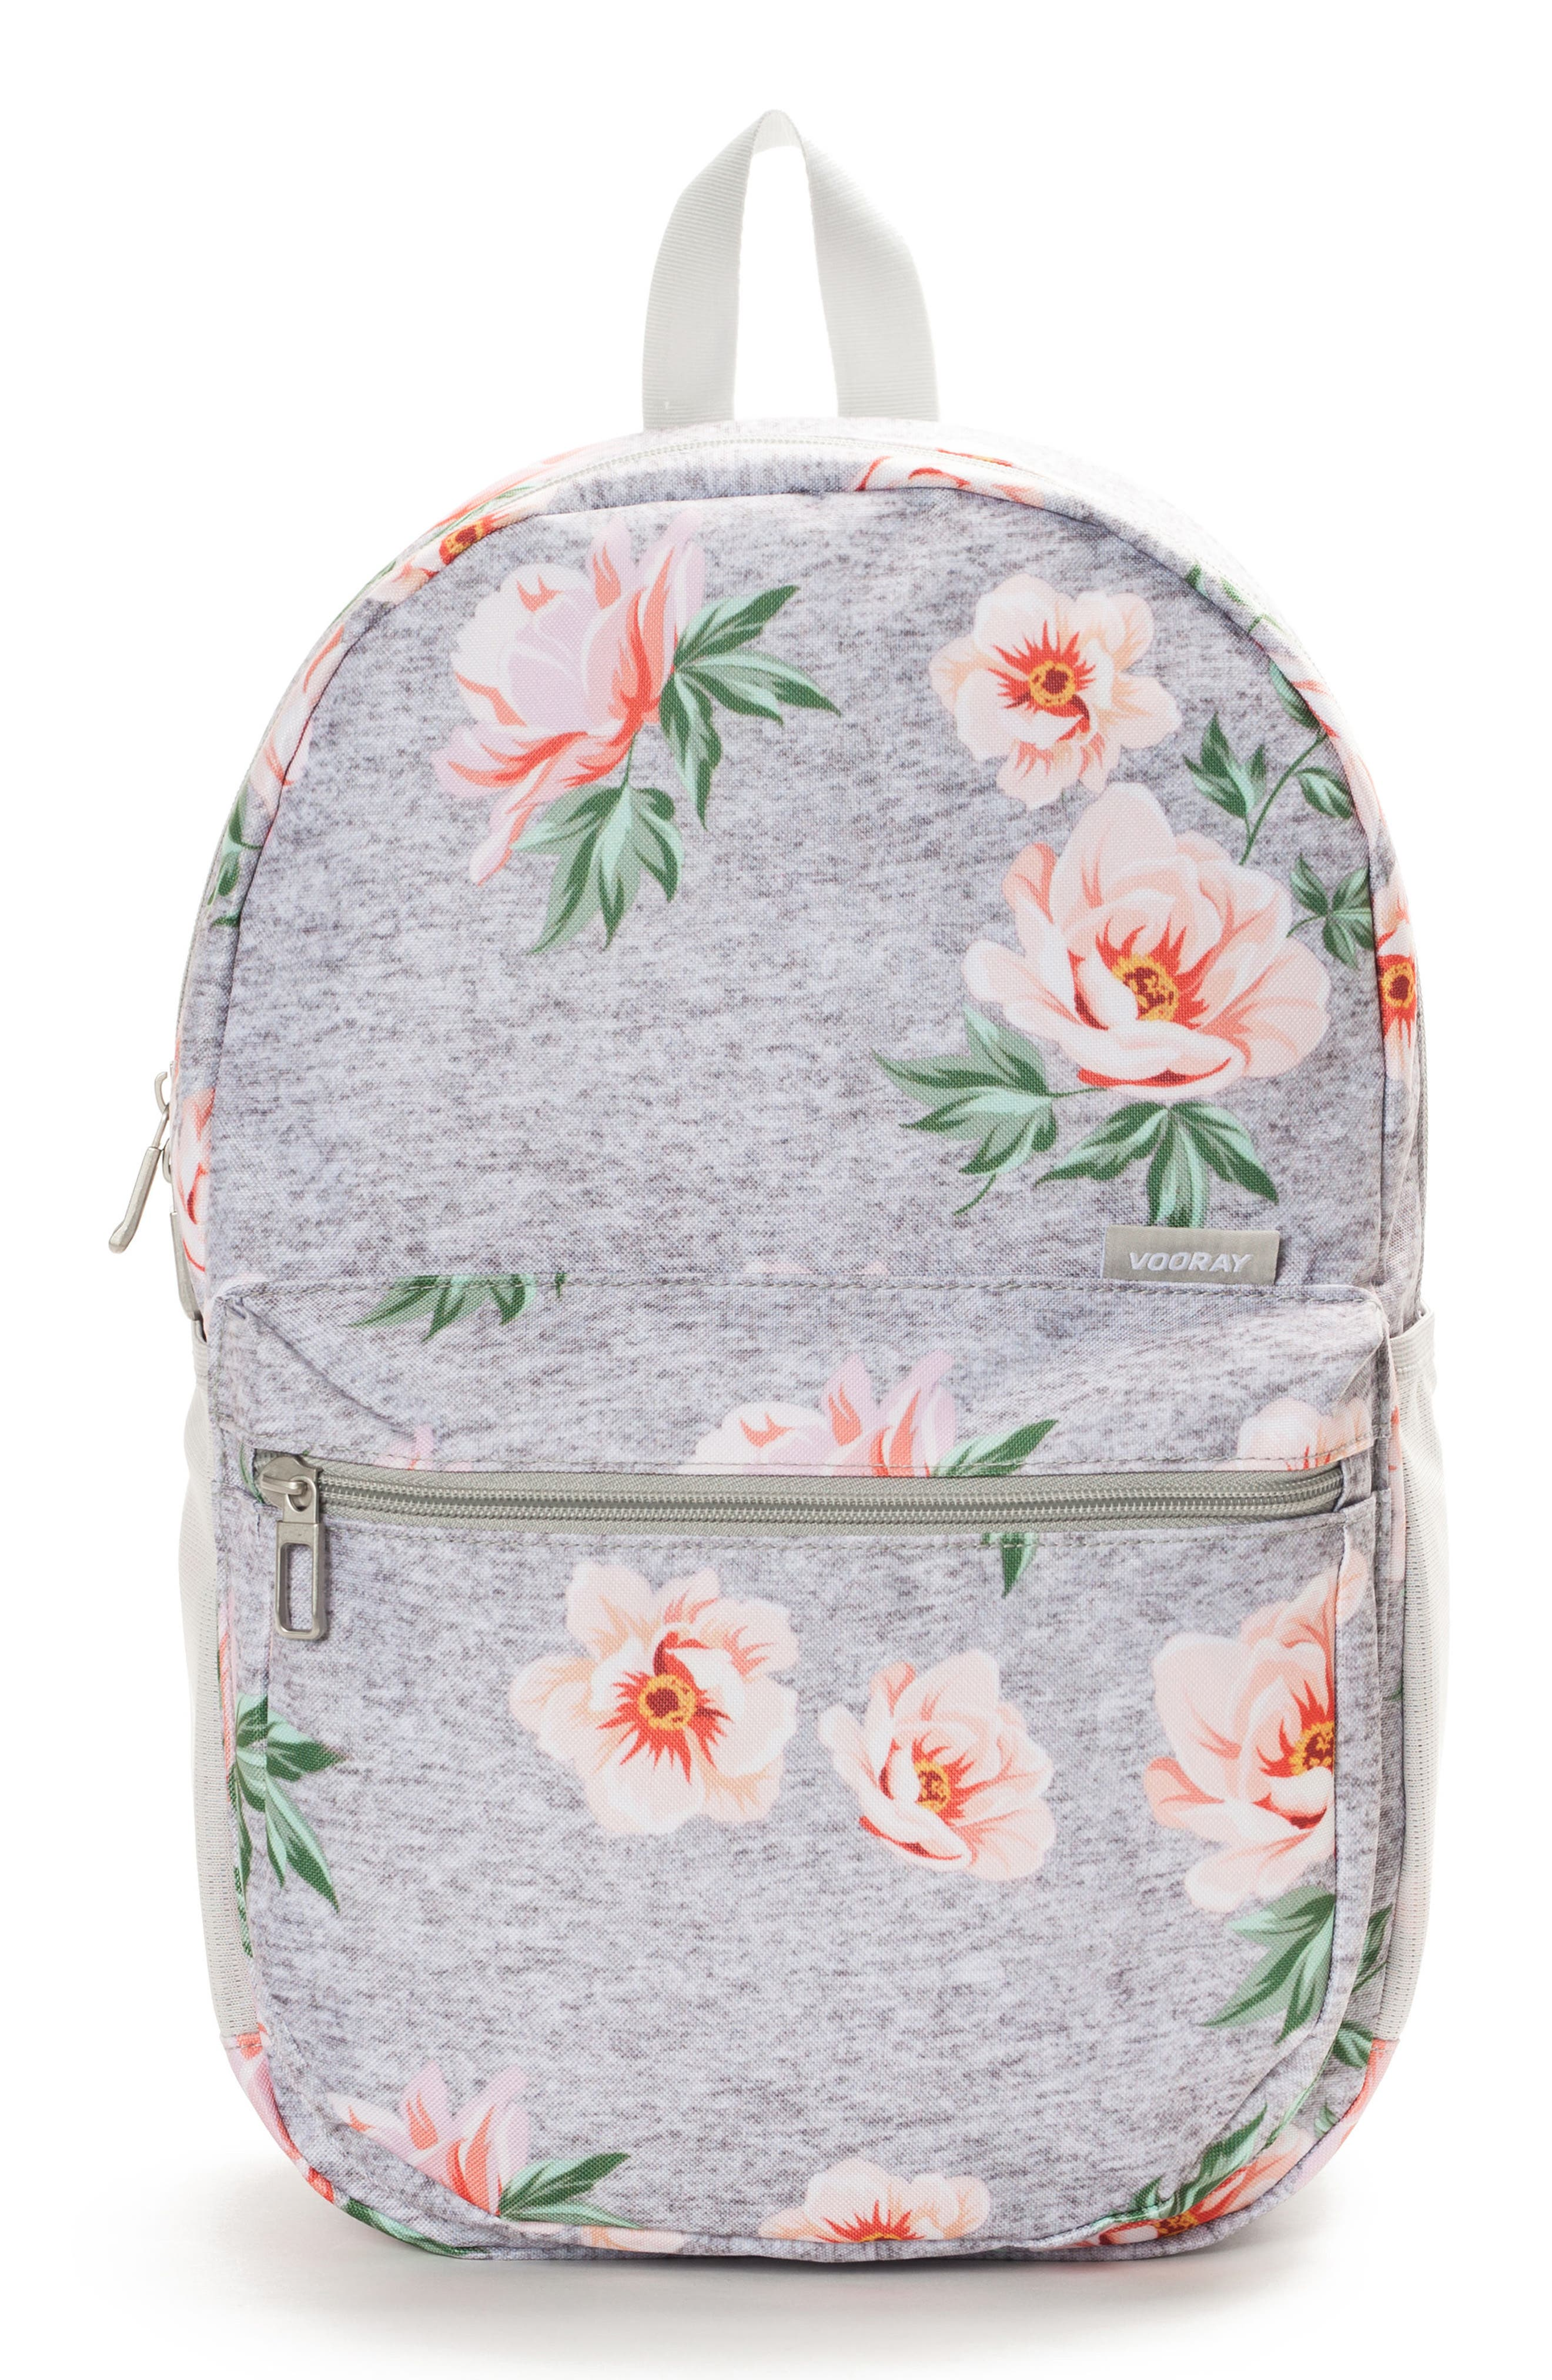 Ace Backpack,                             Main thumbnail 1, color,                             Rose Gray